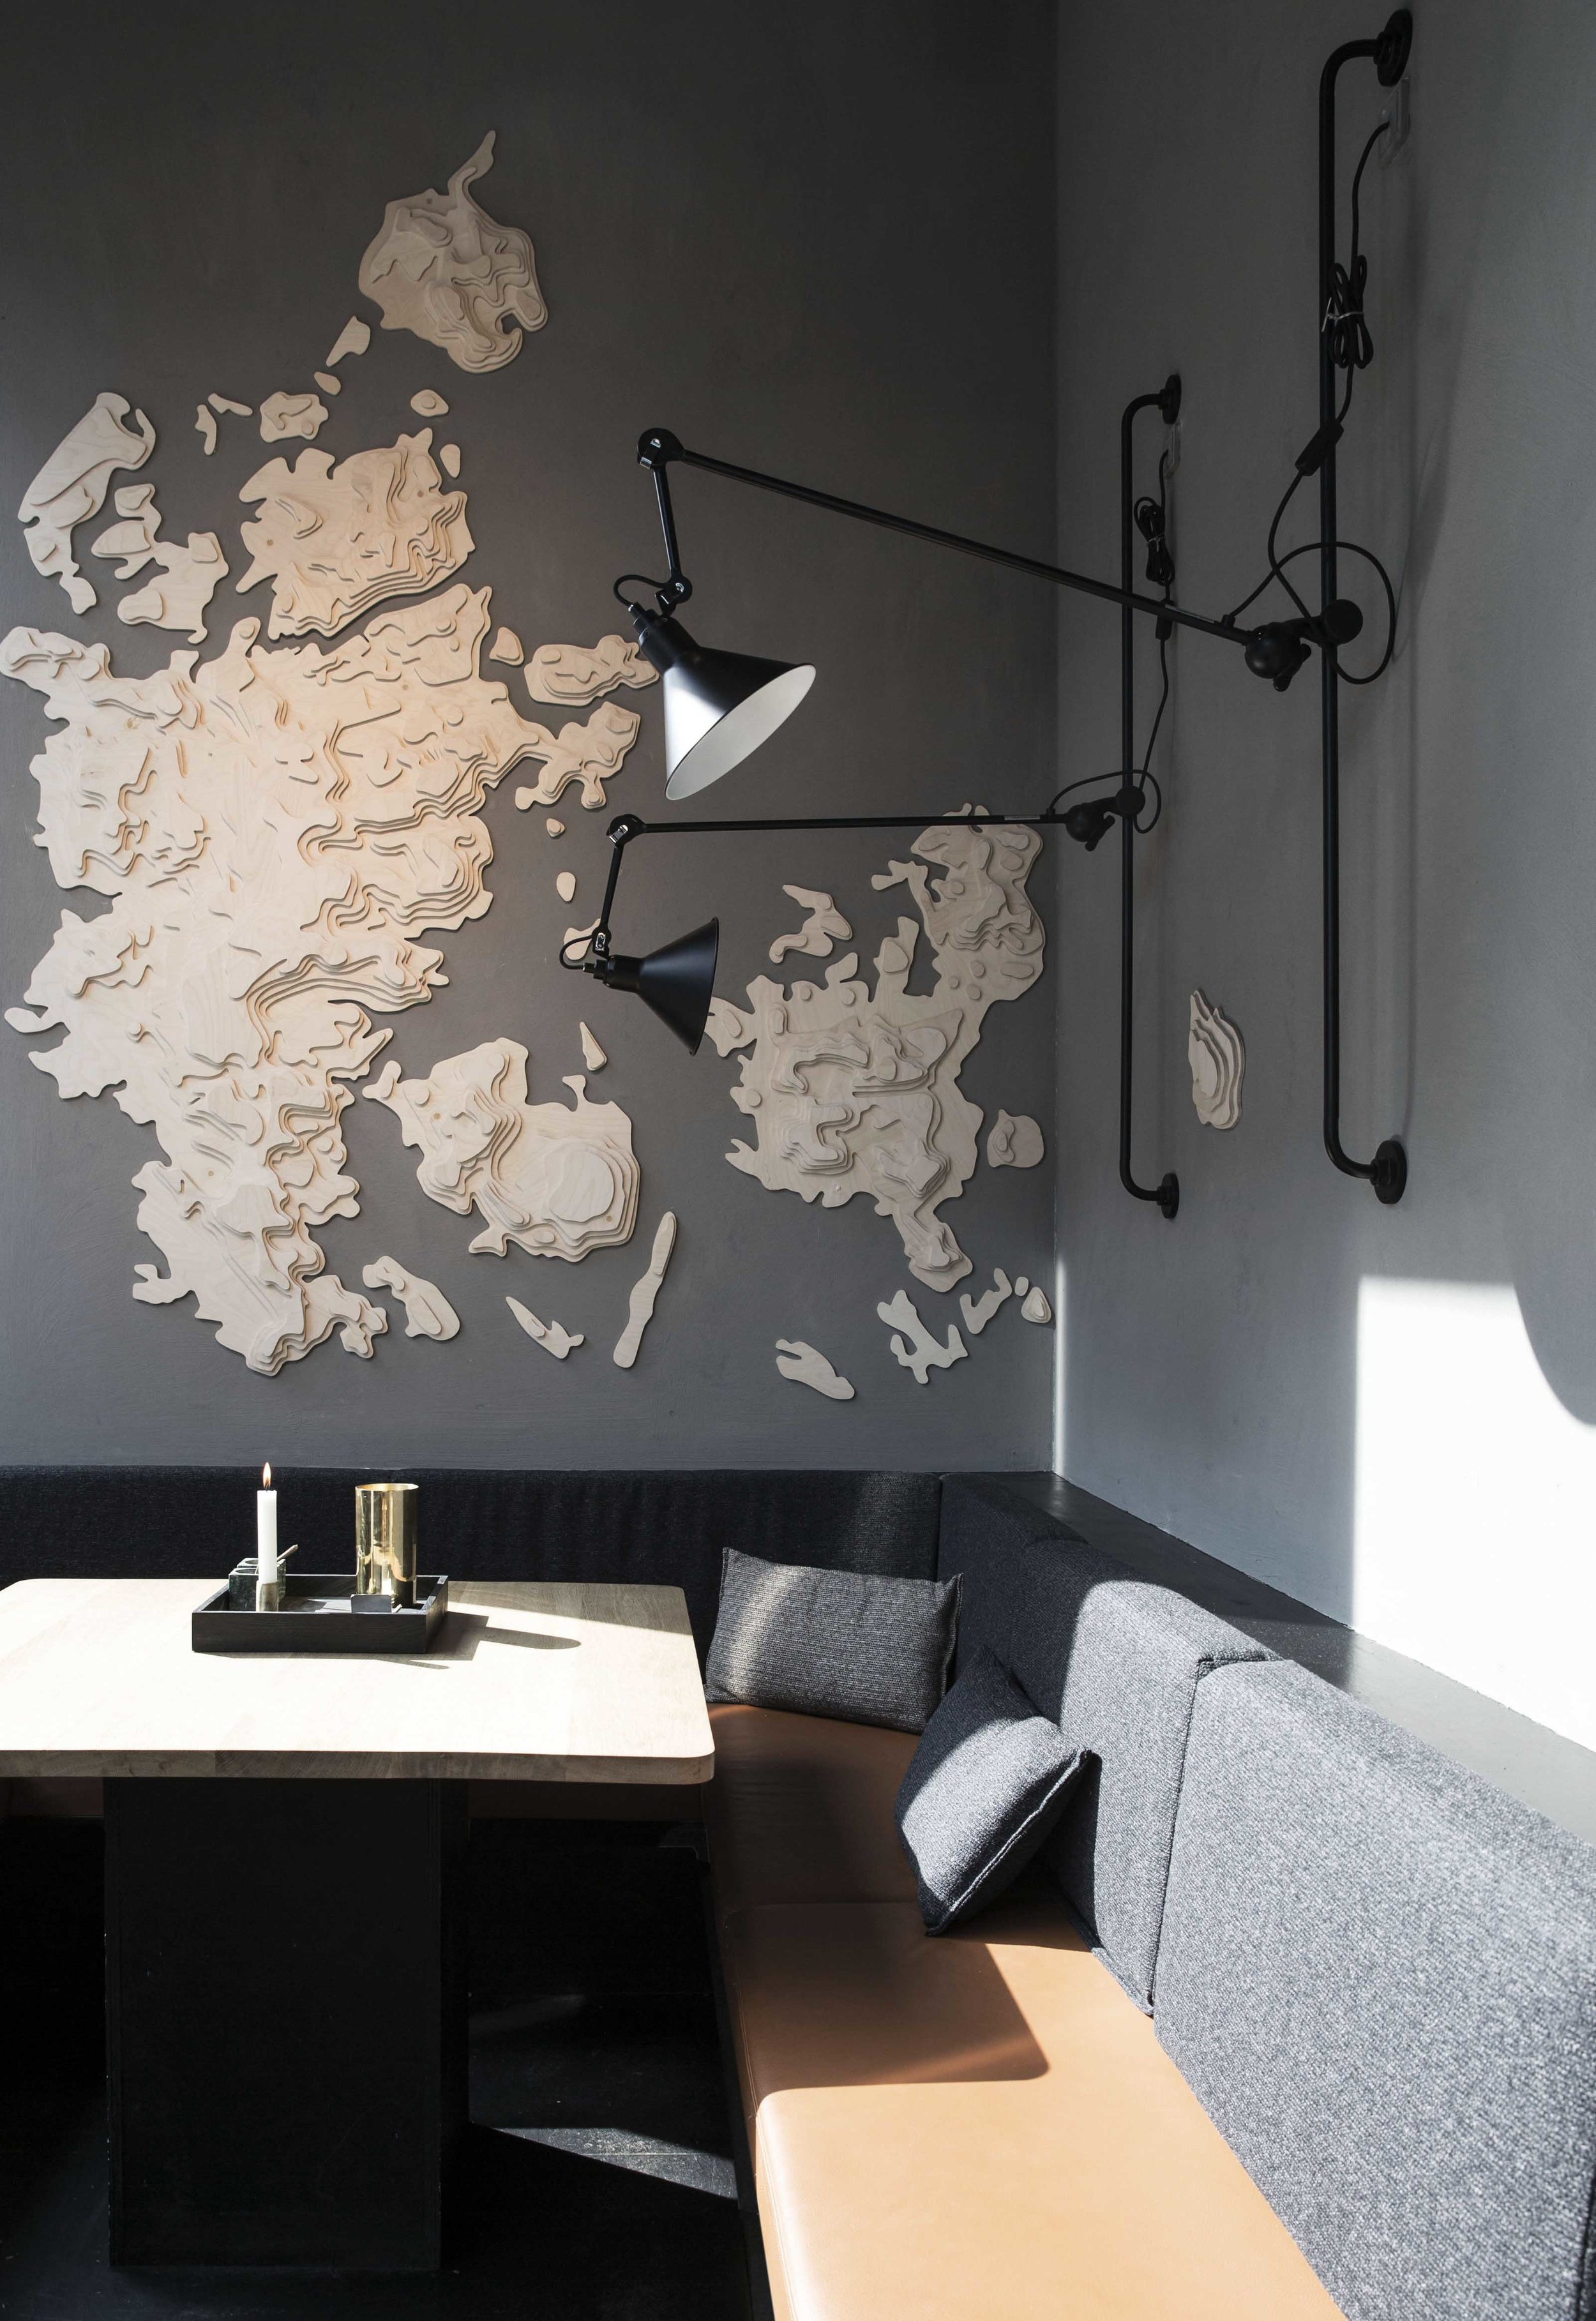 Seating corner with bespoke furniture at Palæo restaurant with map of Denmark mounted to the wall